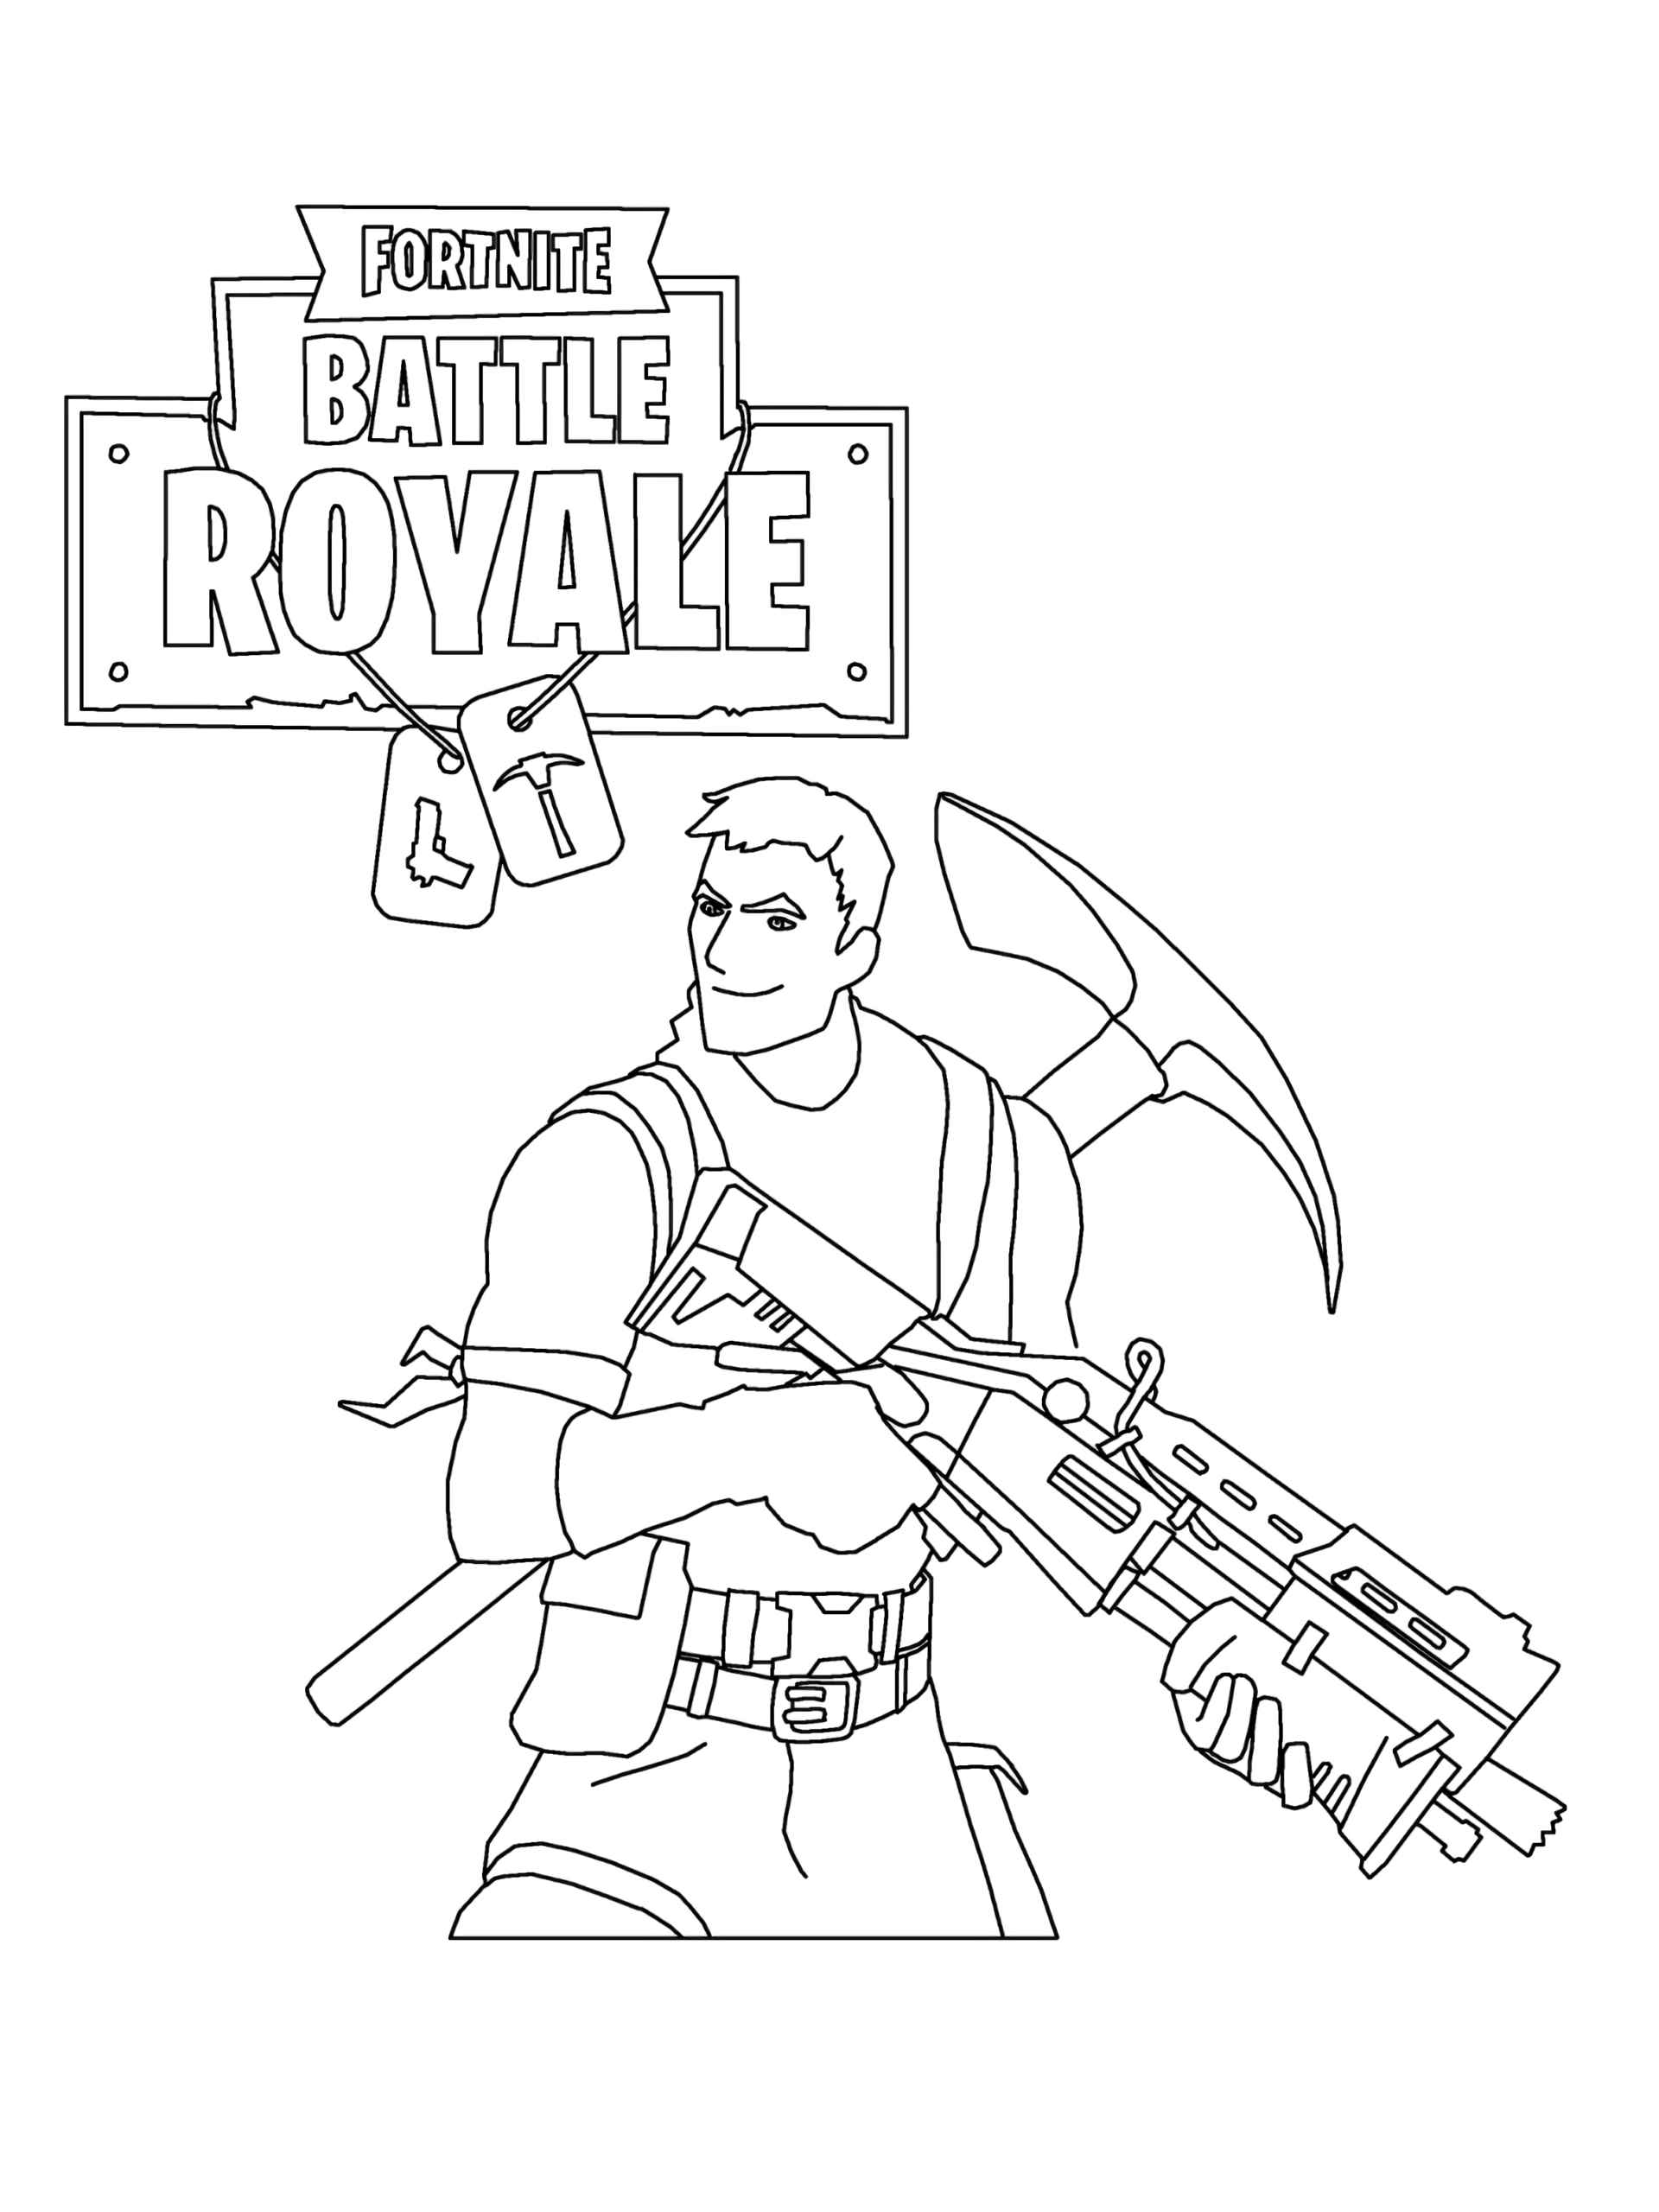 Coloring Page Of The Kid With A Pickaxe And A Weapon In Fortnite